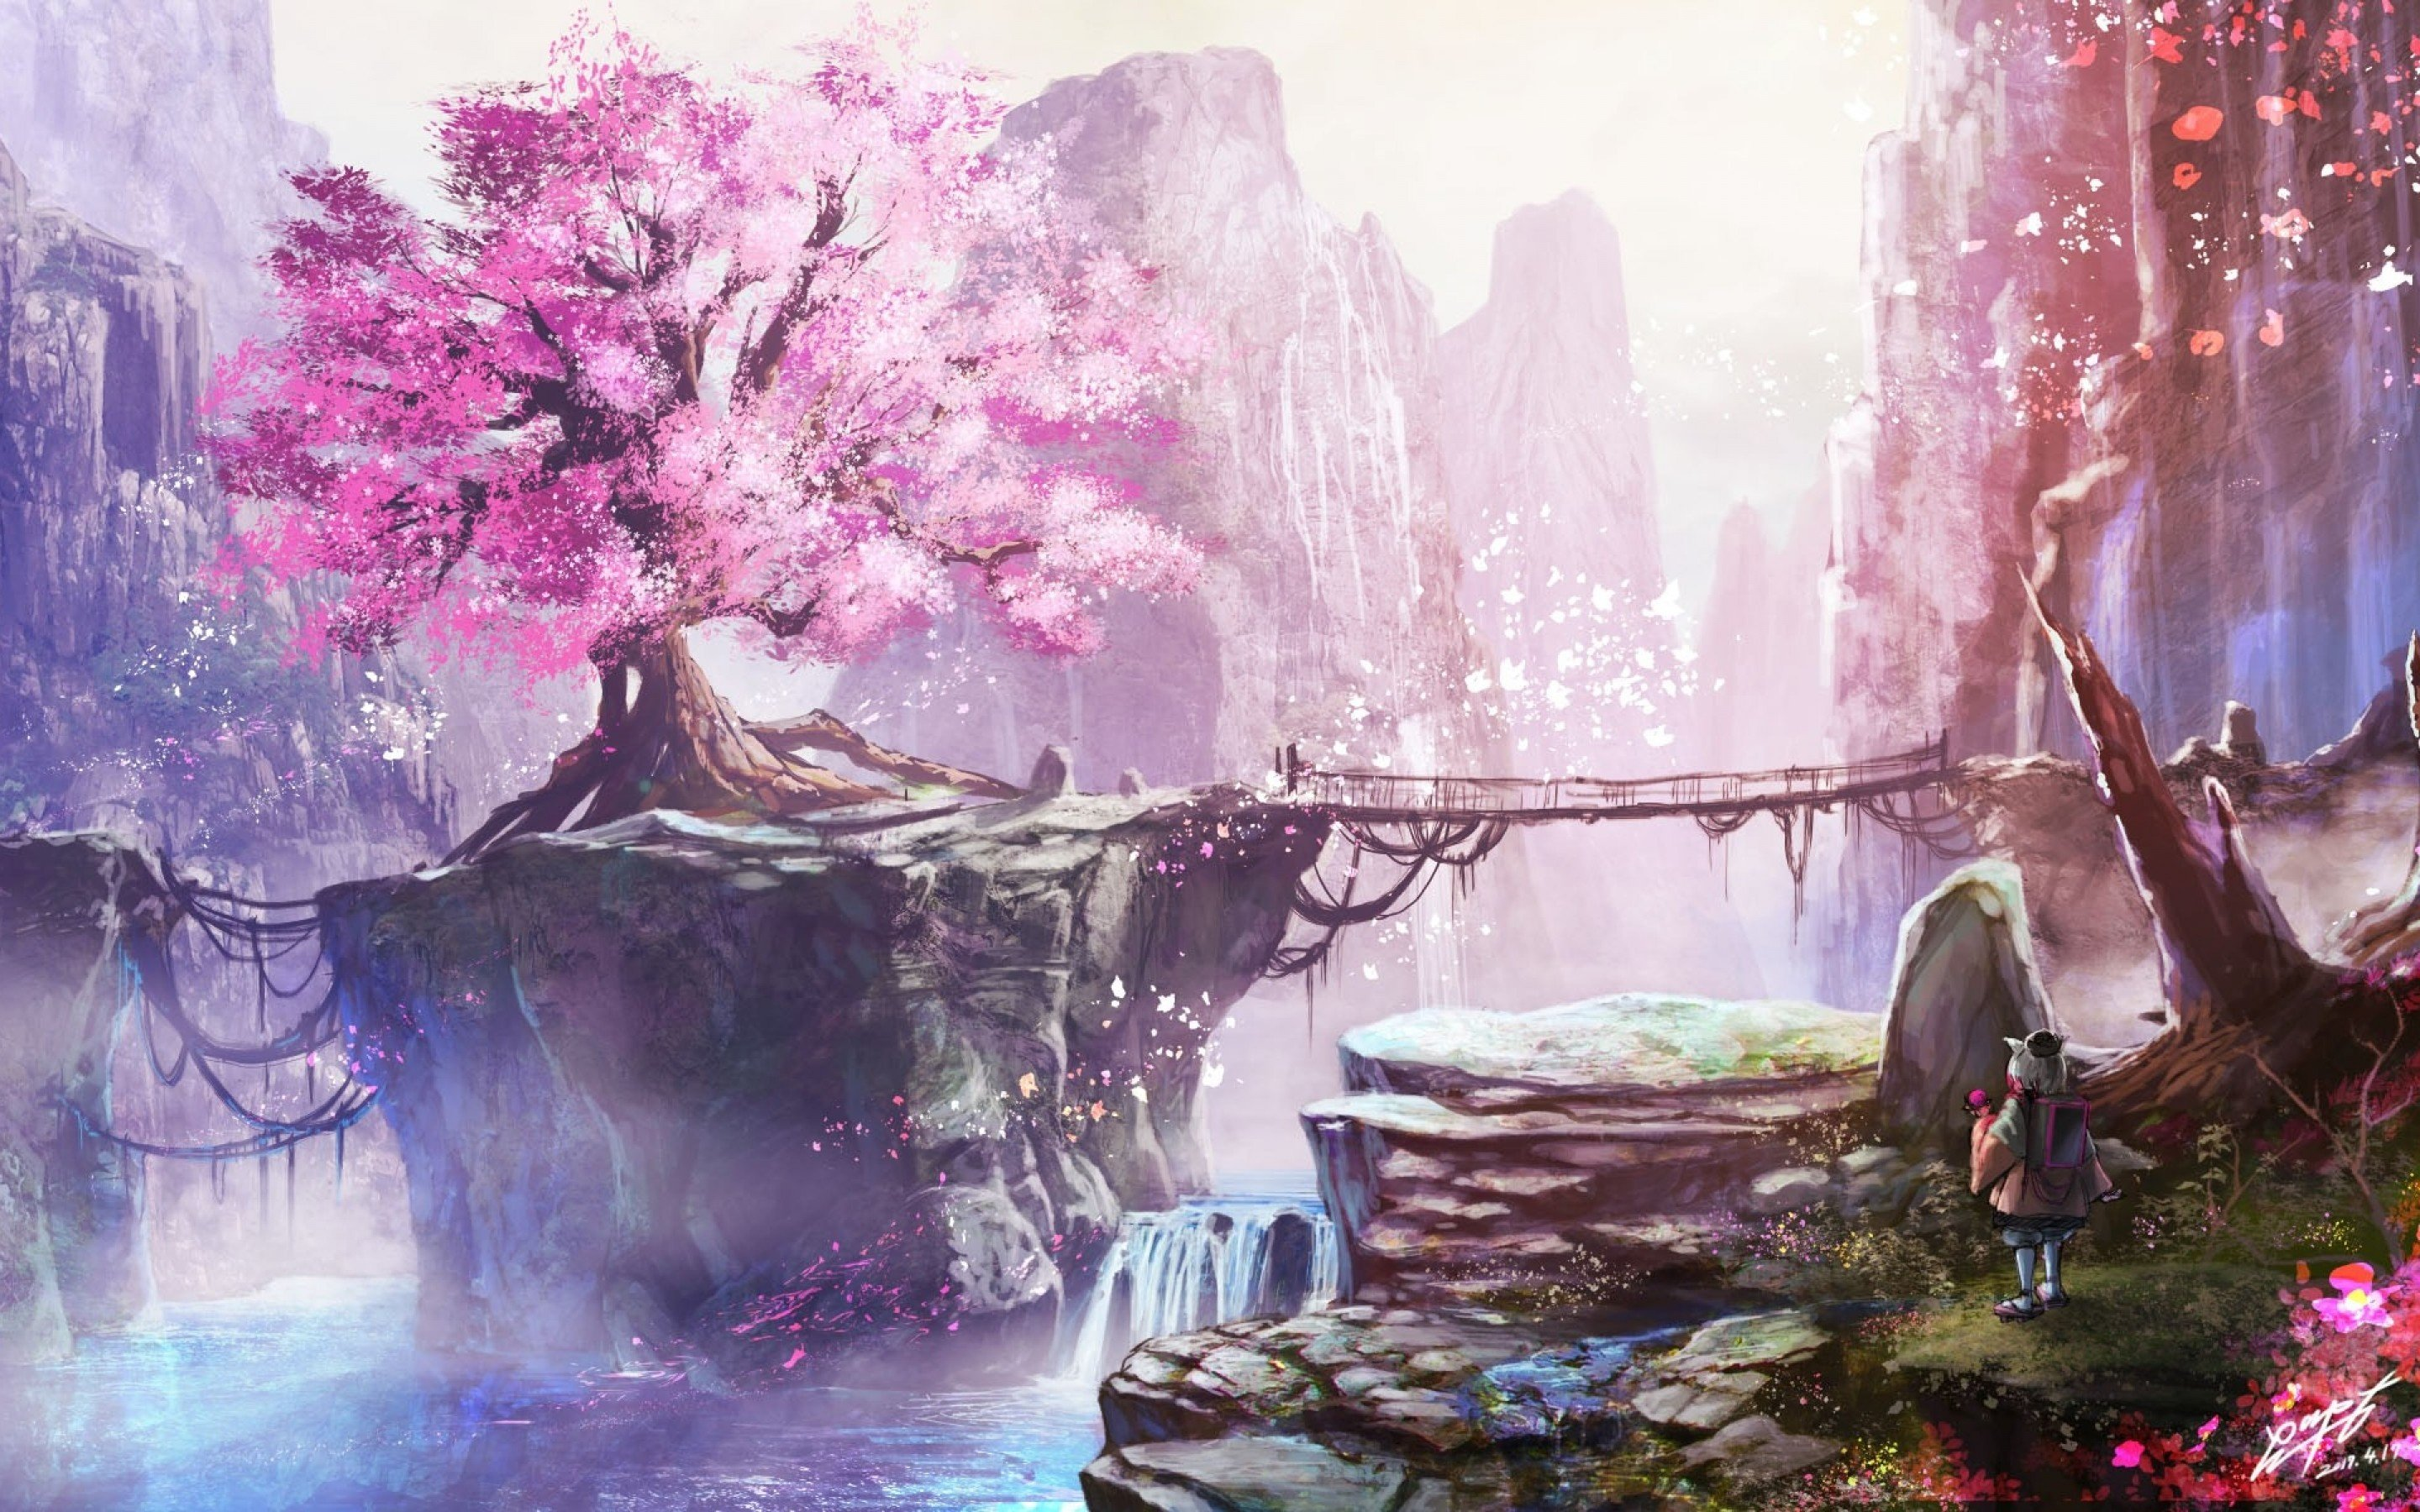 Anime Cherry Blossom Aesthetic Wallpaper